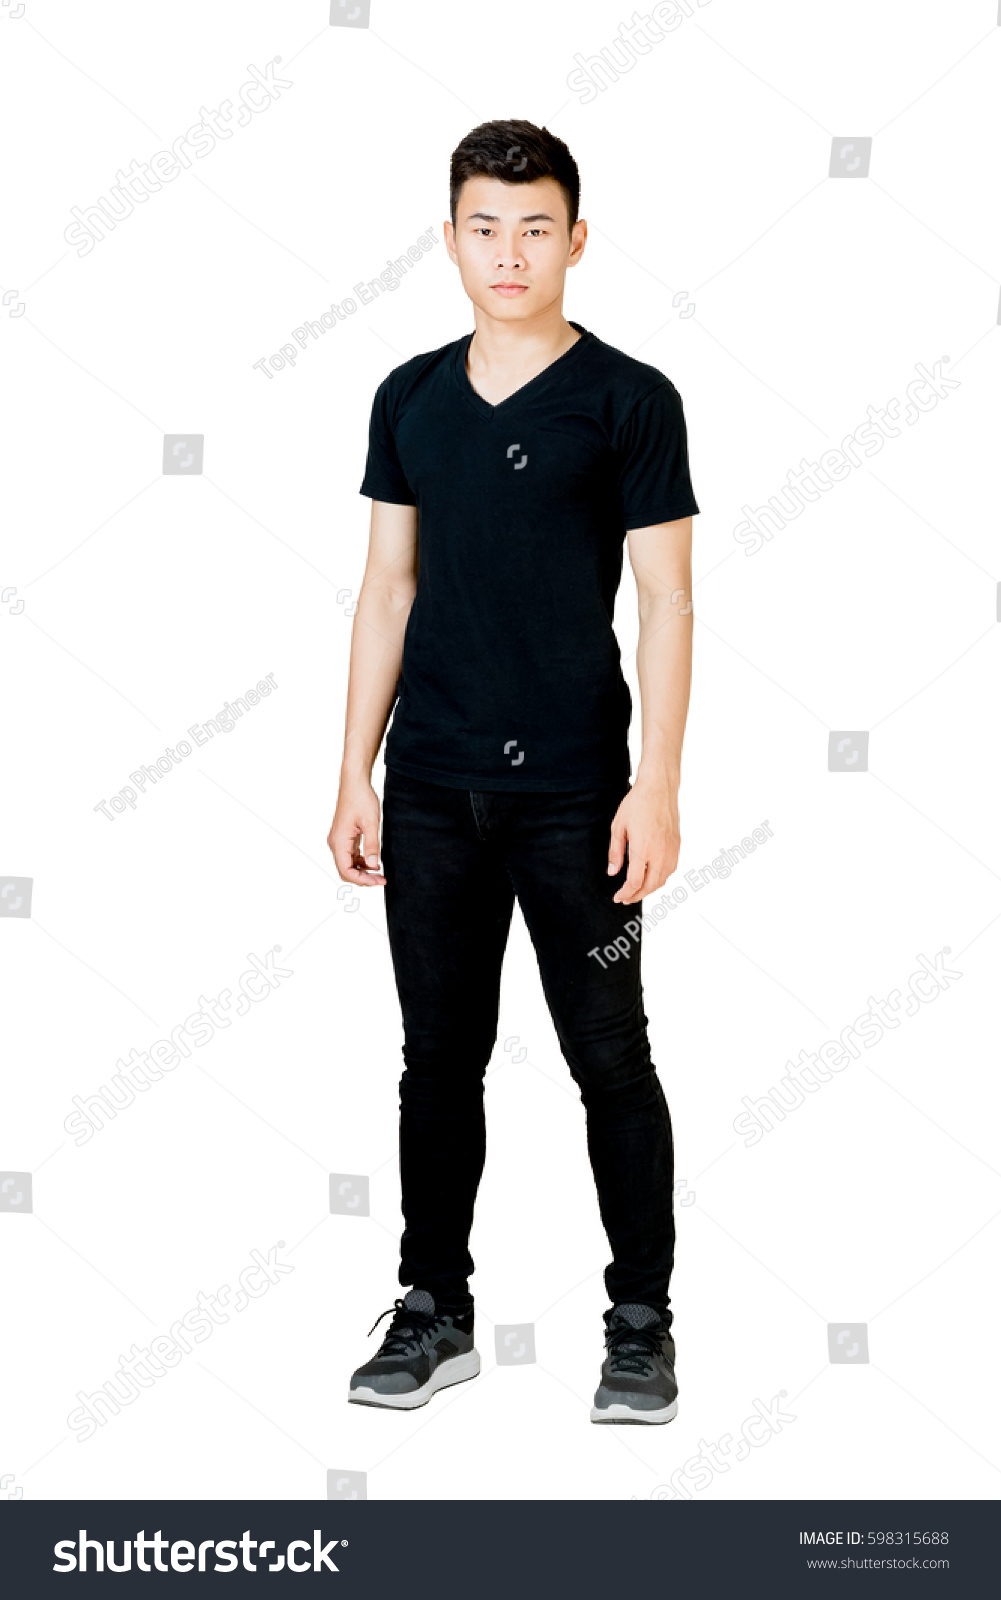 Black t shirt and jeans - Portrait Of A Man Standing In Black T Shirt And Black Jeans Isolated Full